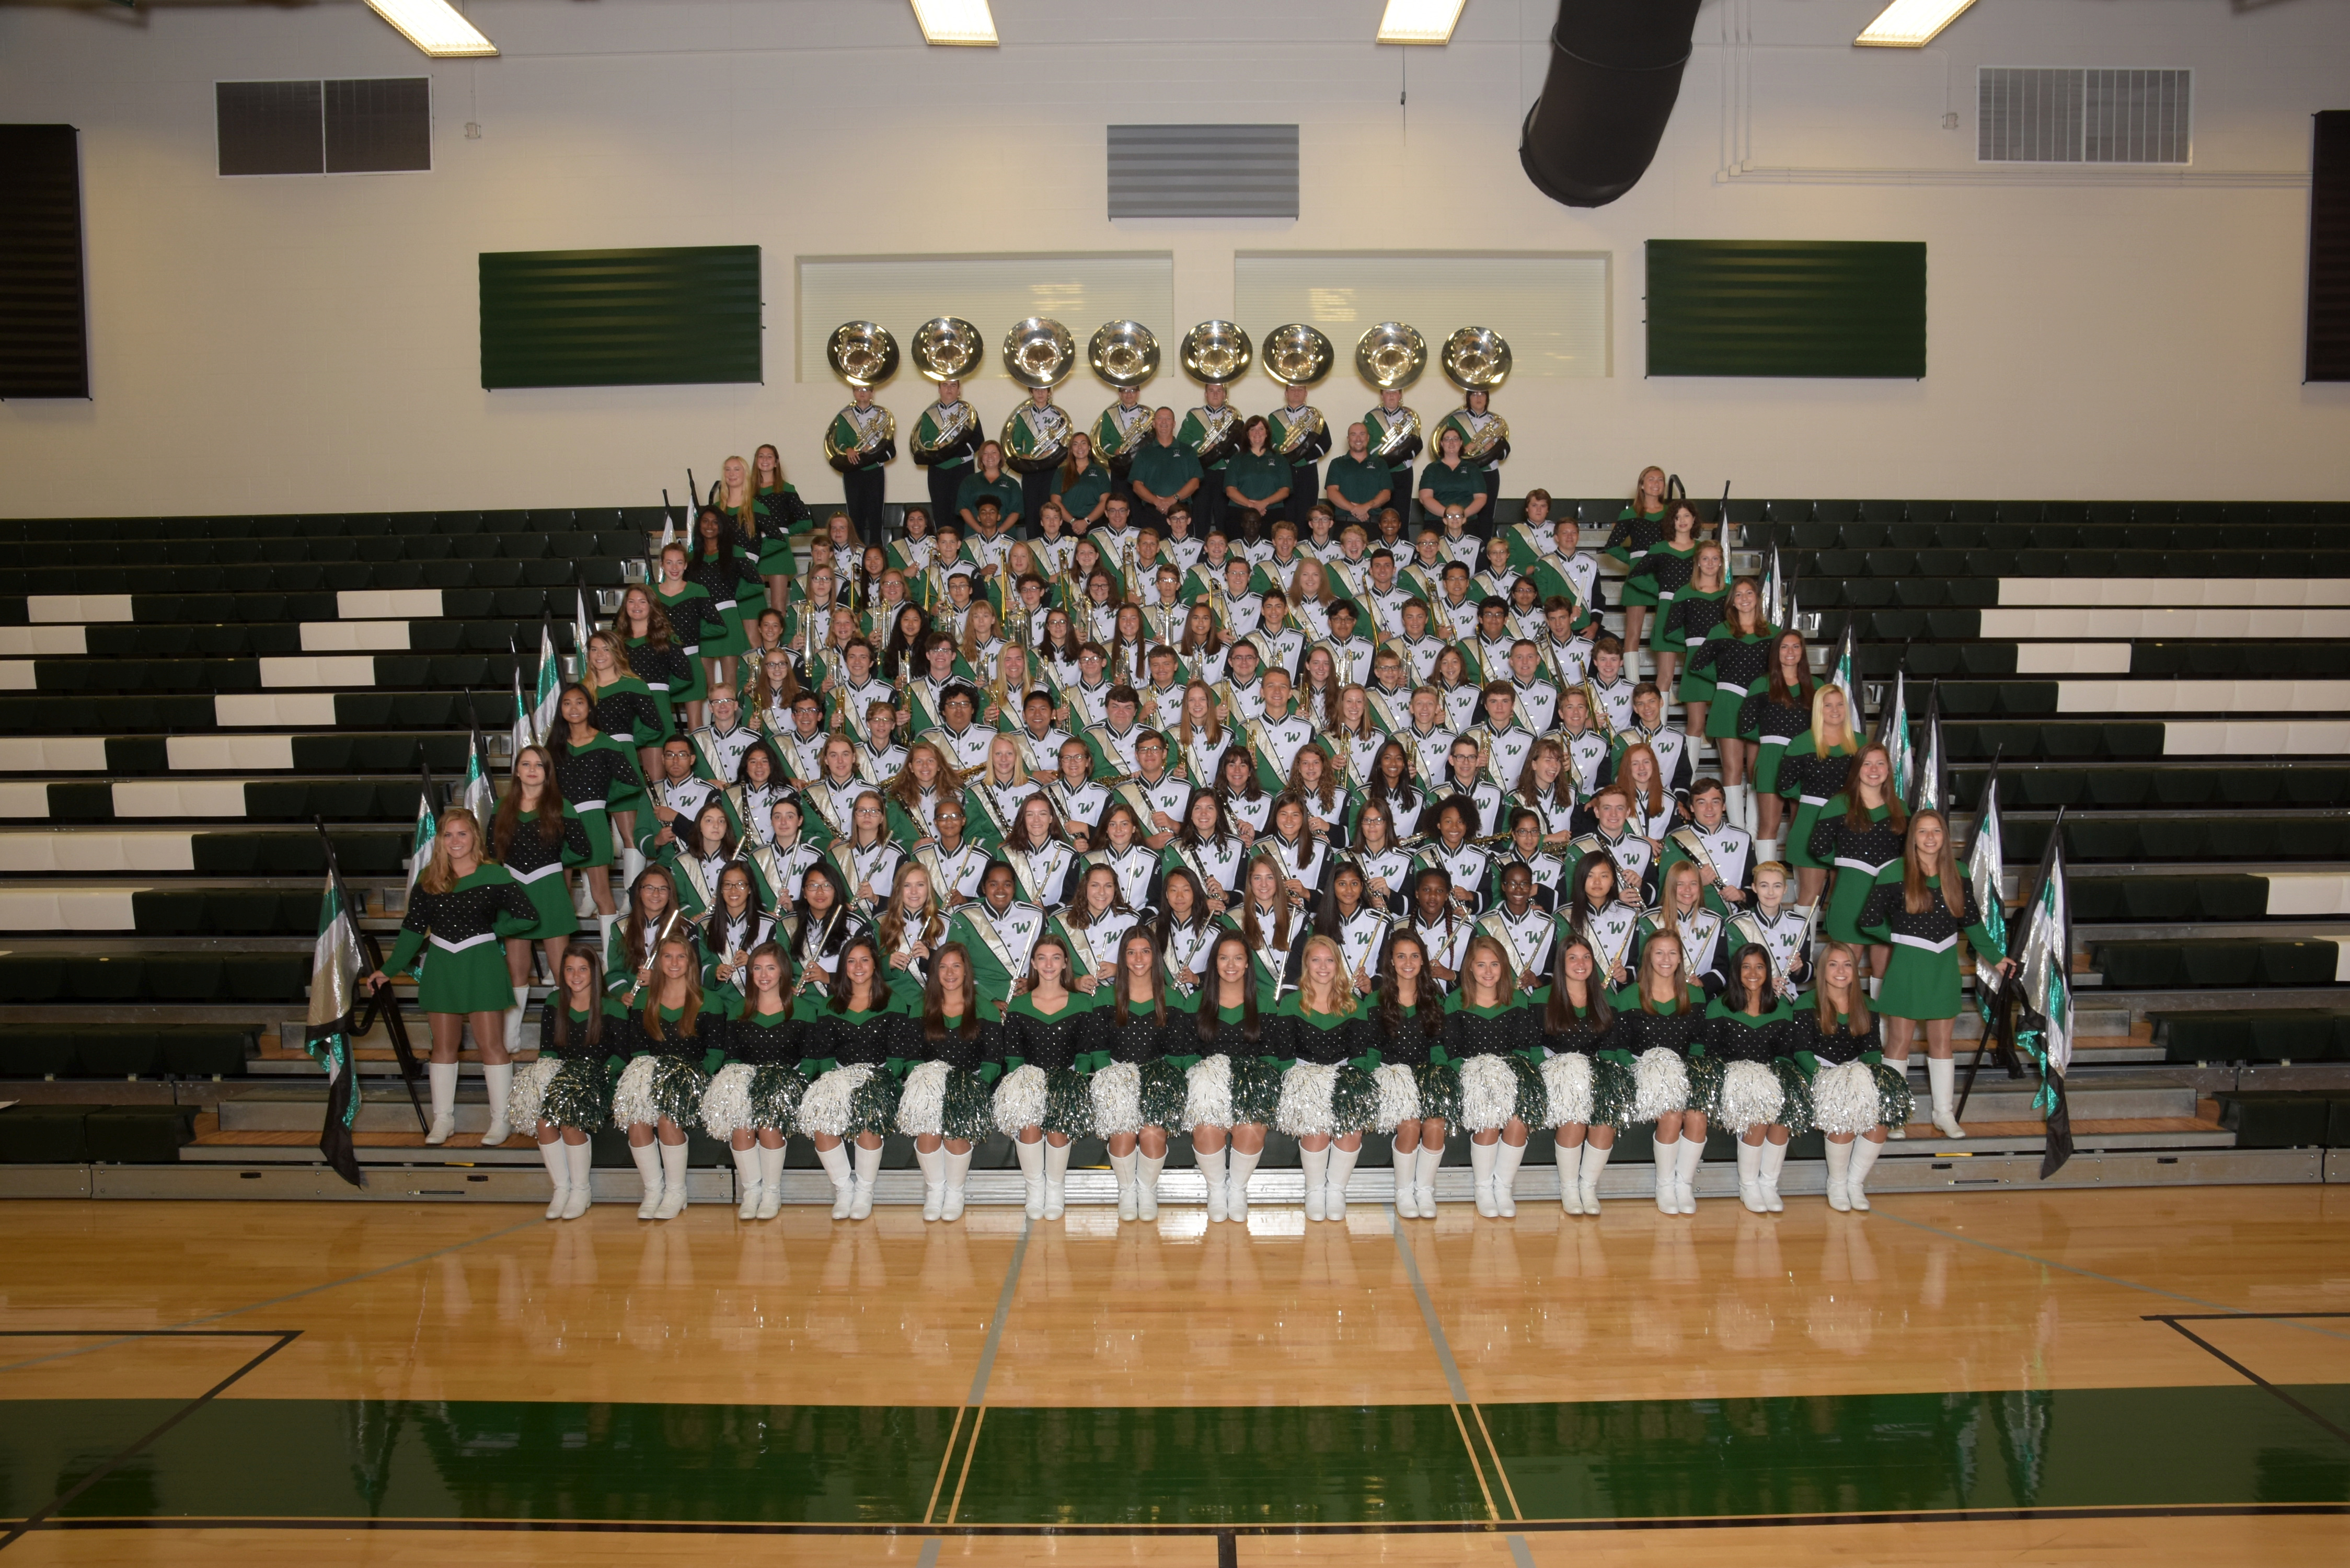 Marching Band - Westlake City School District